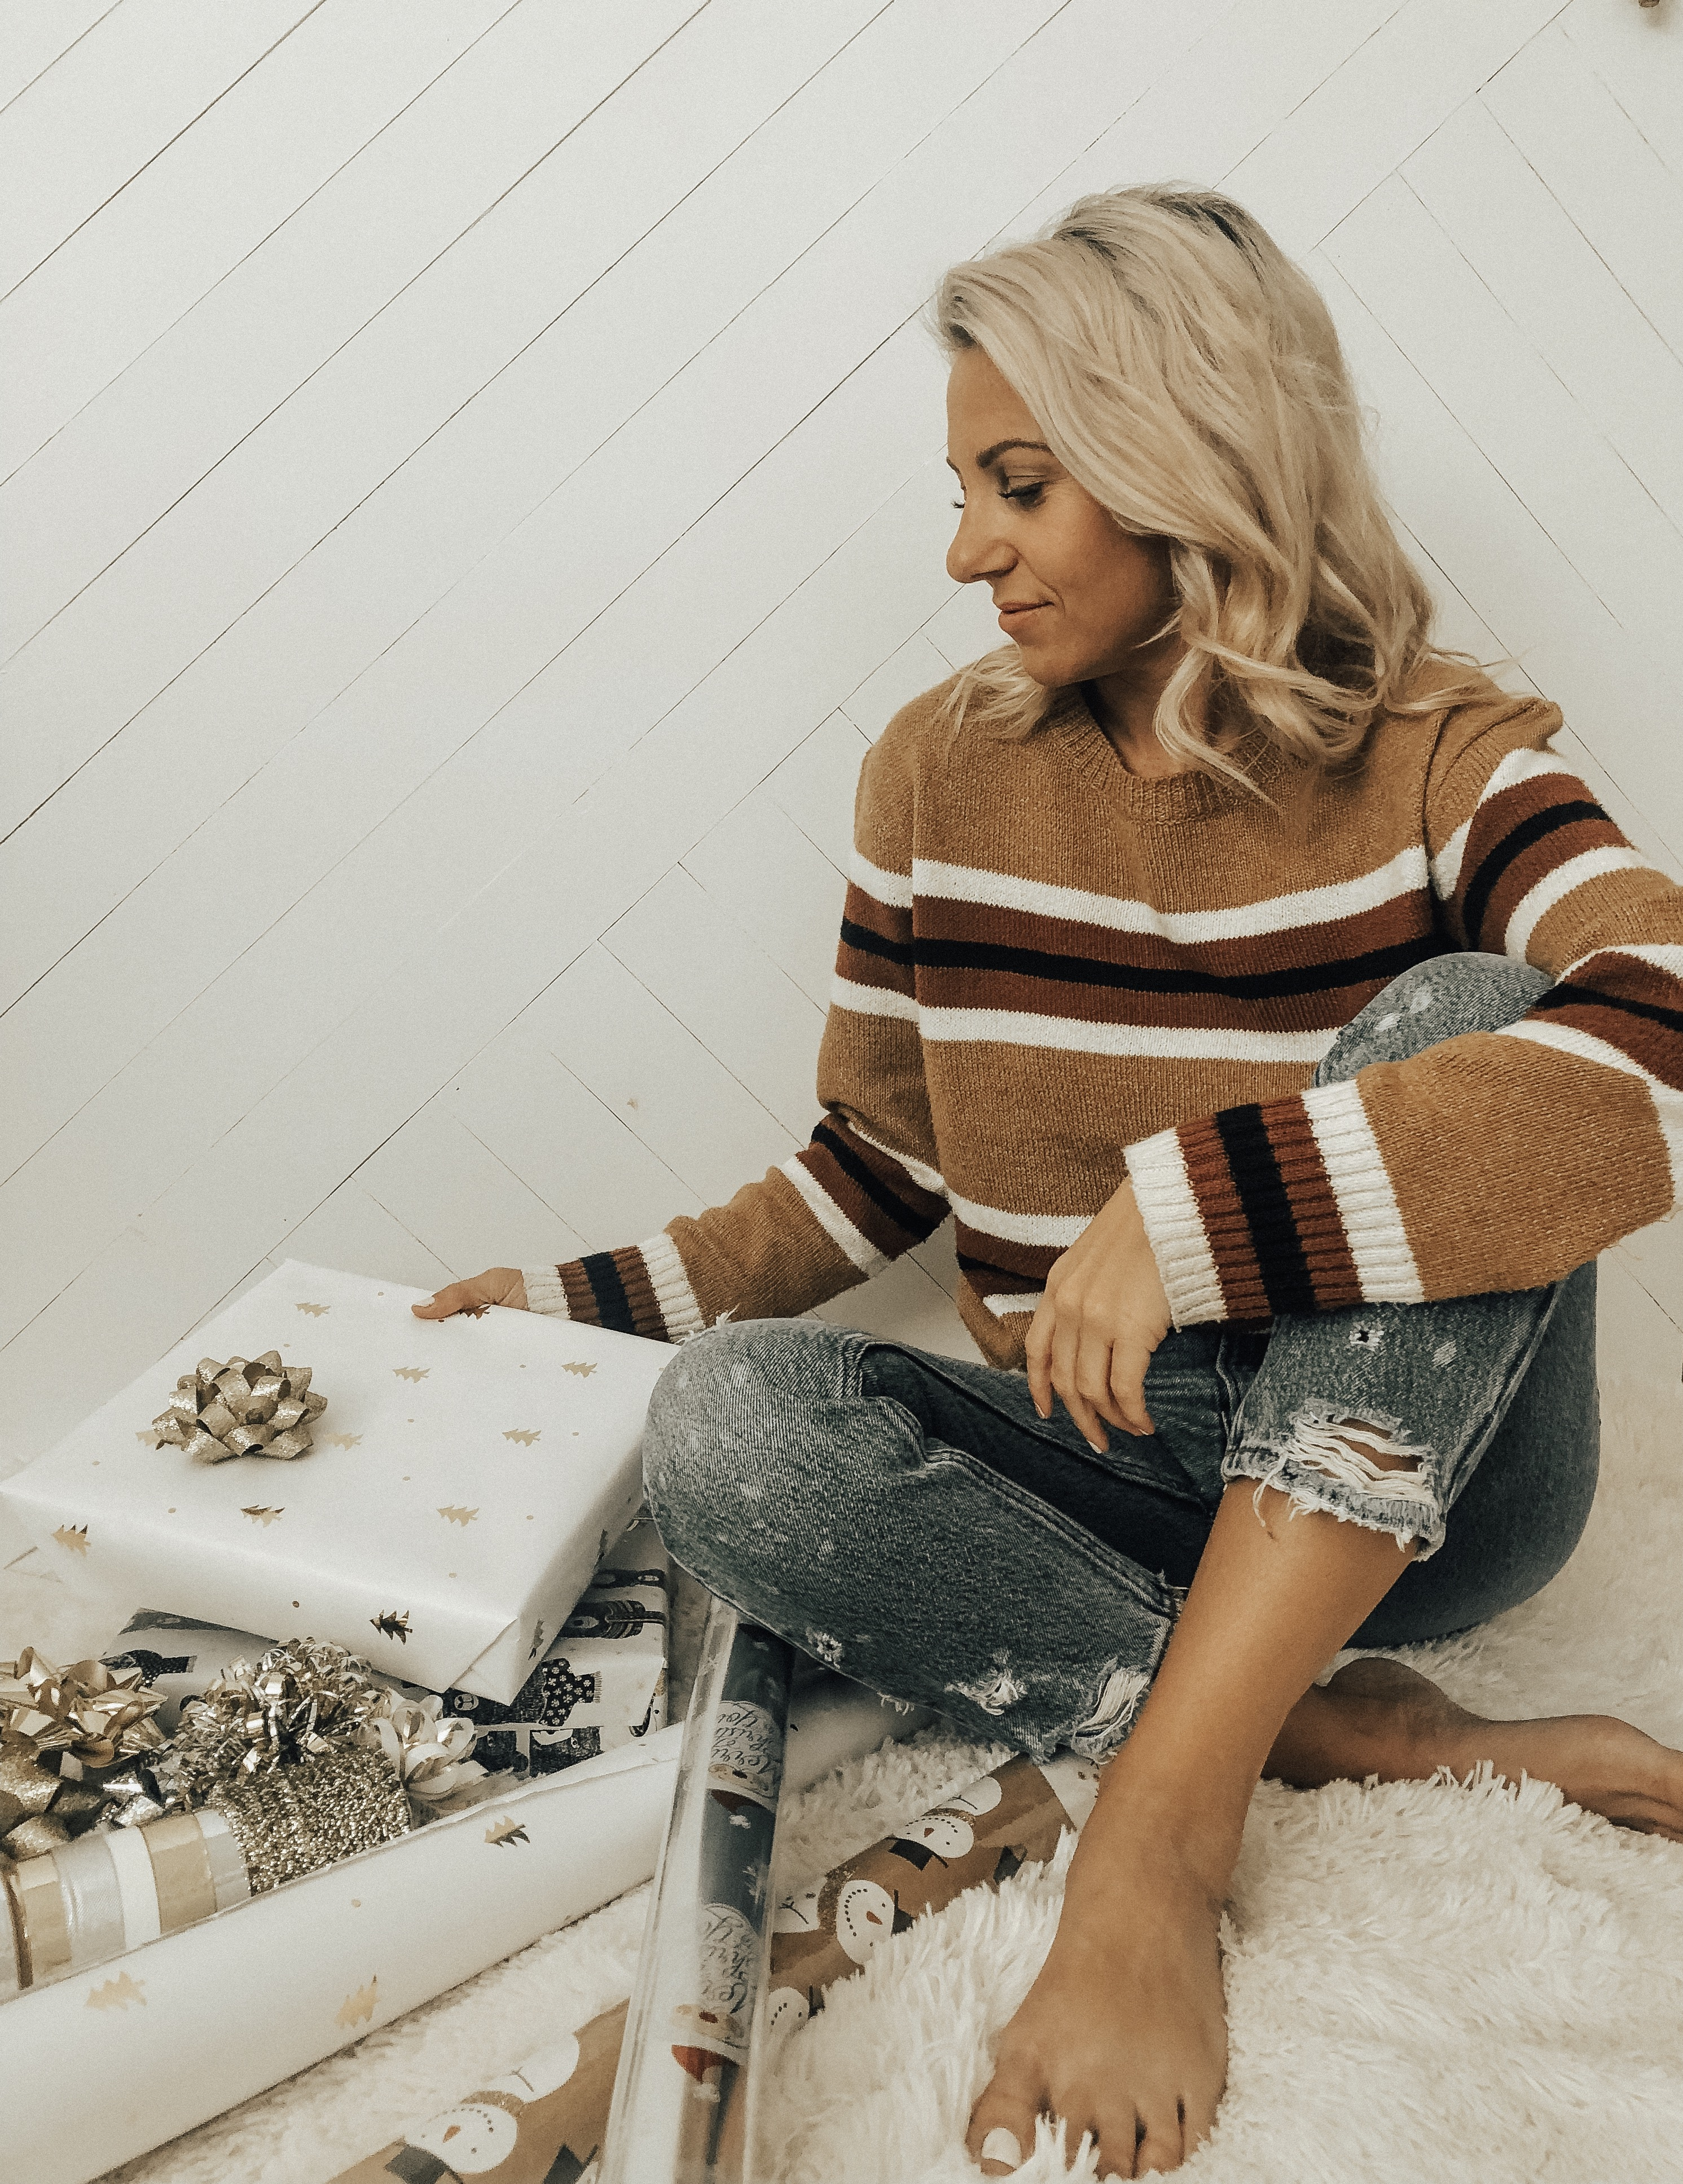 JANE GIFT GUIDE FOR EVERYONE ON YOUR LIST- Jaclyn De Leon Style - holiday gift guide + online shopping + what to buy this xmas + gift giving + for the beauty lover + for the kids + for the techy + cozy sherpa sweatshirt + coffee lover + shopping guide + striped sweater + wrapping gifts + mom jeans